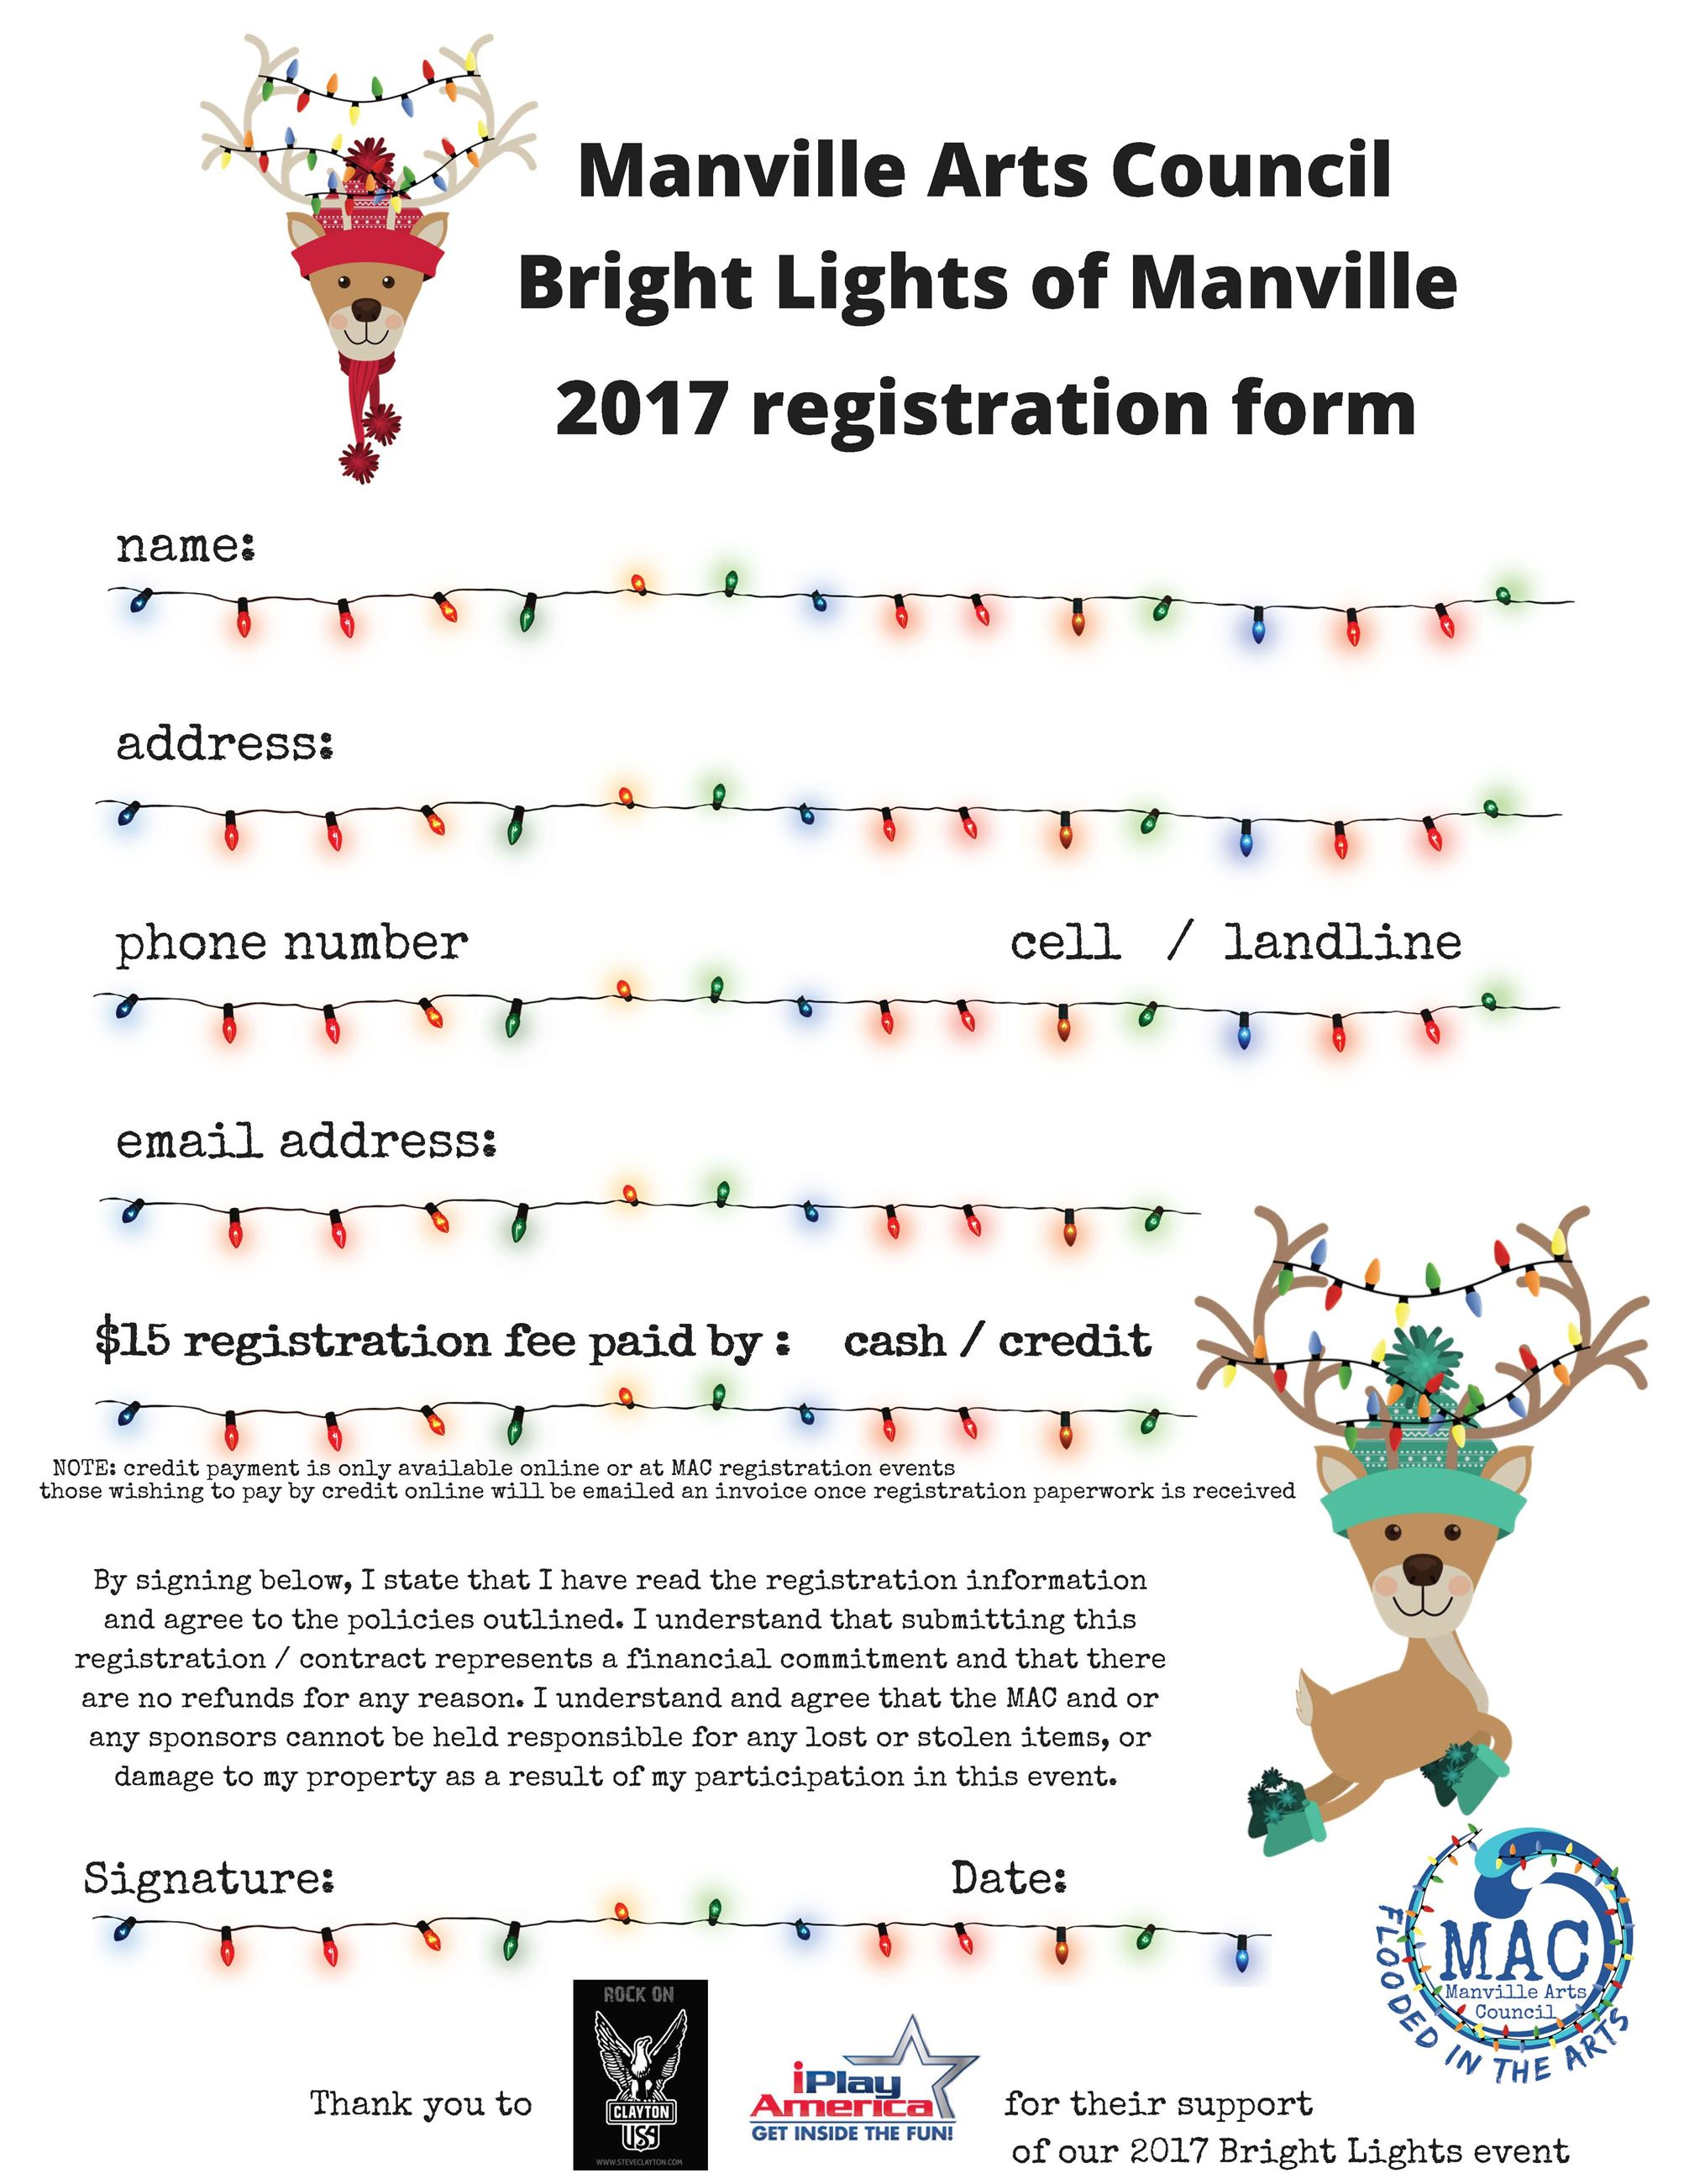 BrightLightsRegistration2017